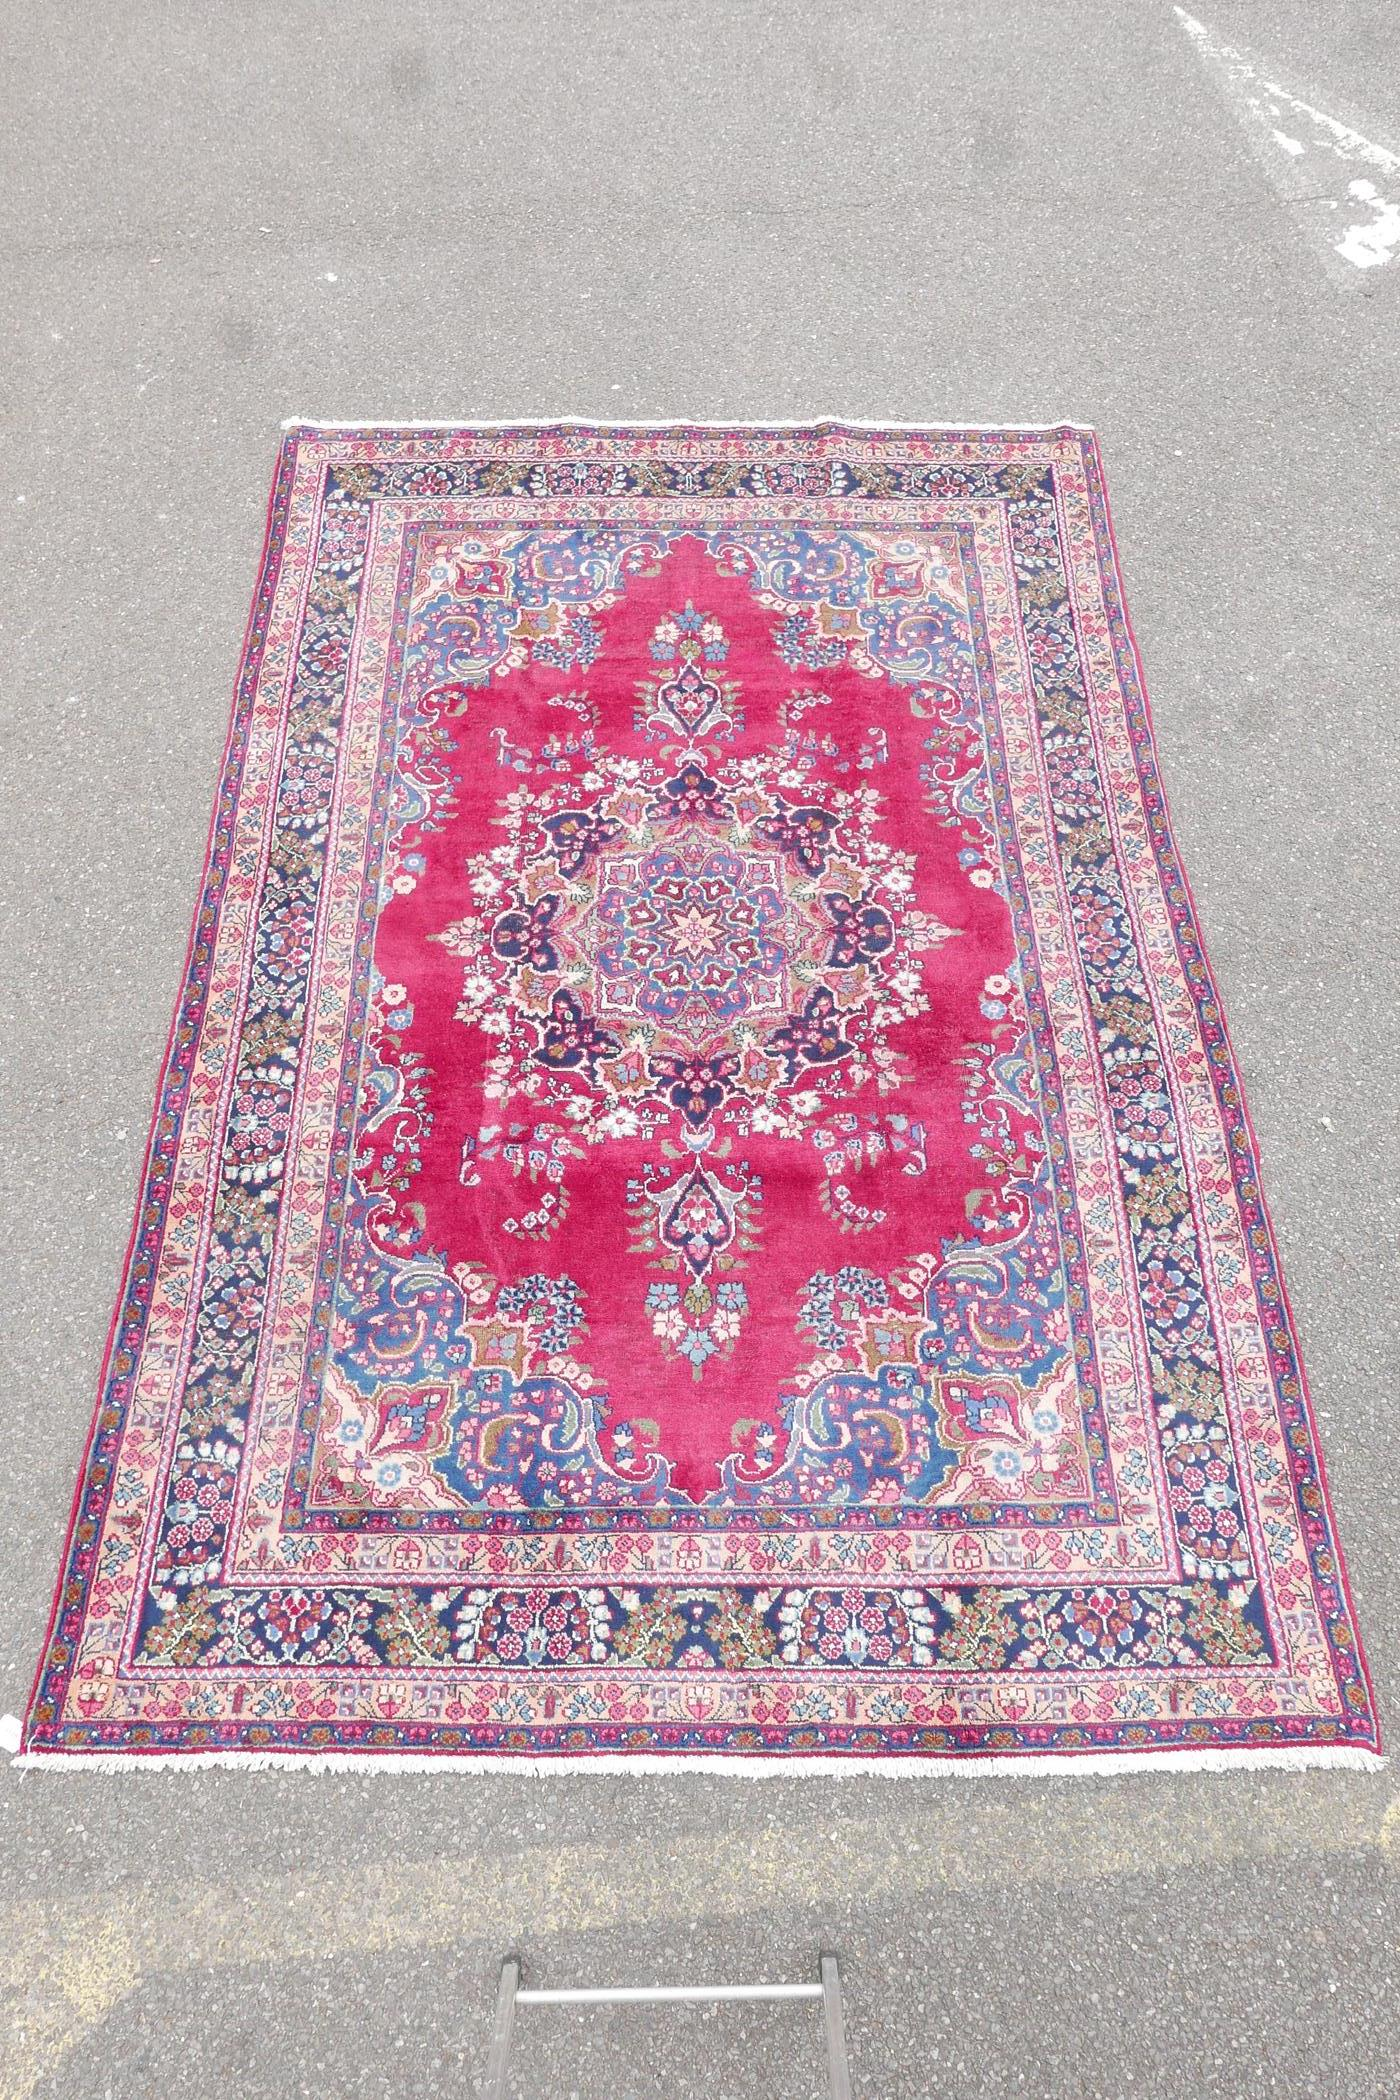 """A pink/red ground Persian Kashmar carpet with a floral medallion design, 77"""" x 117"""" - Image 5 of 7"""